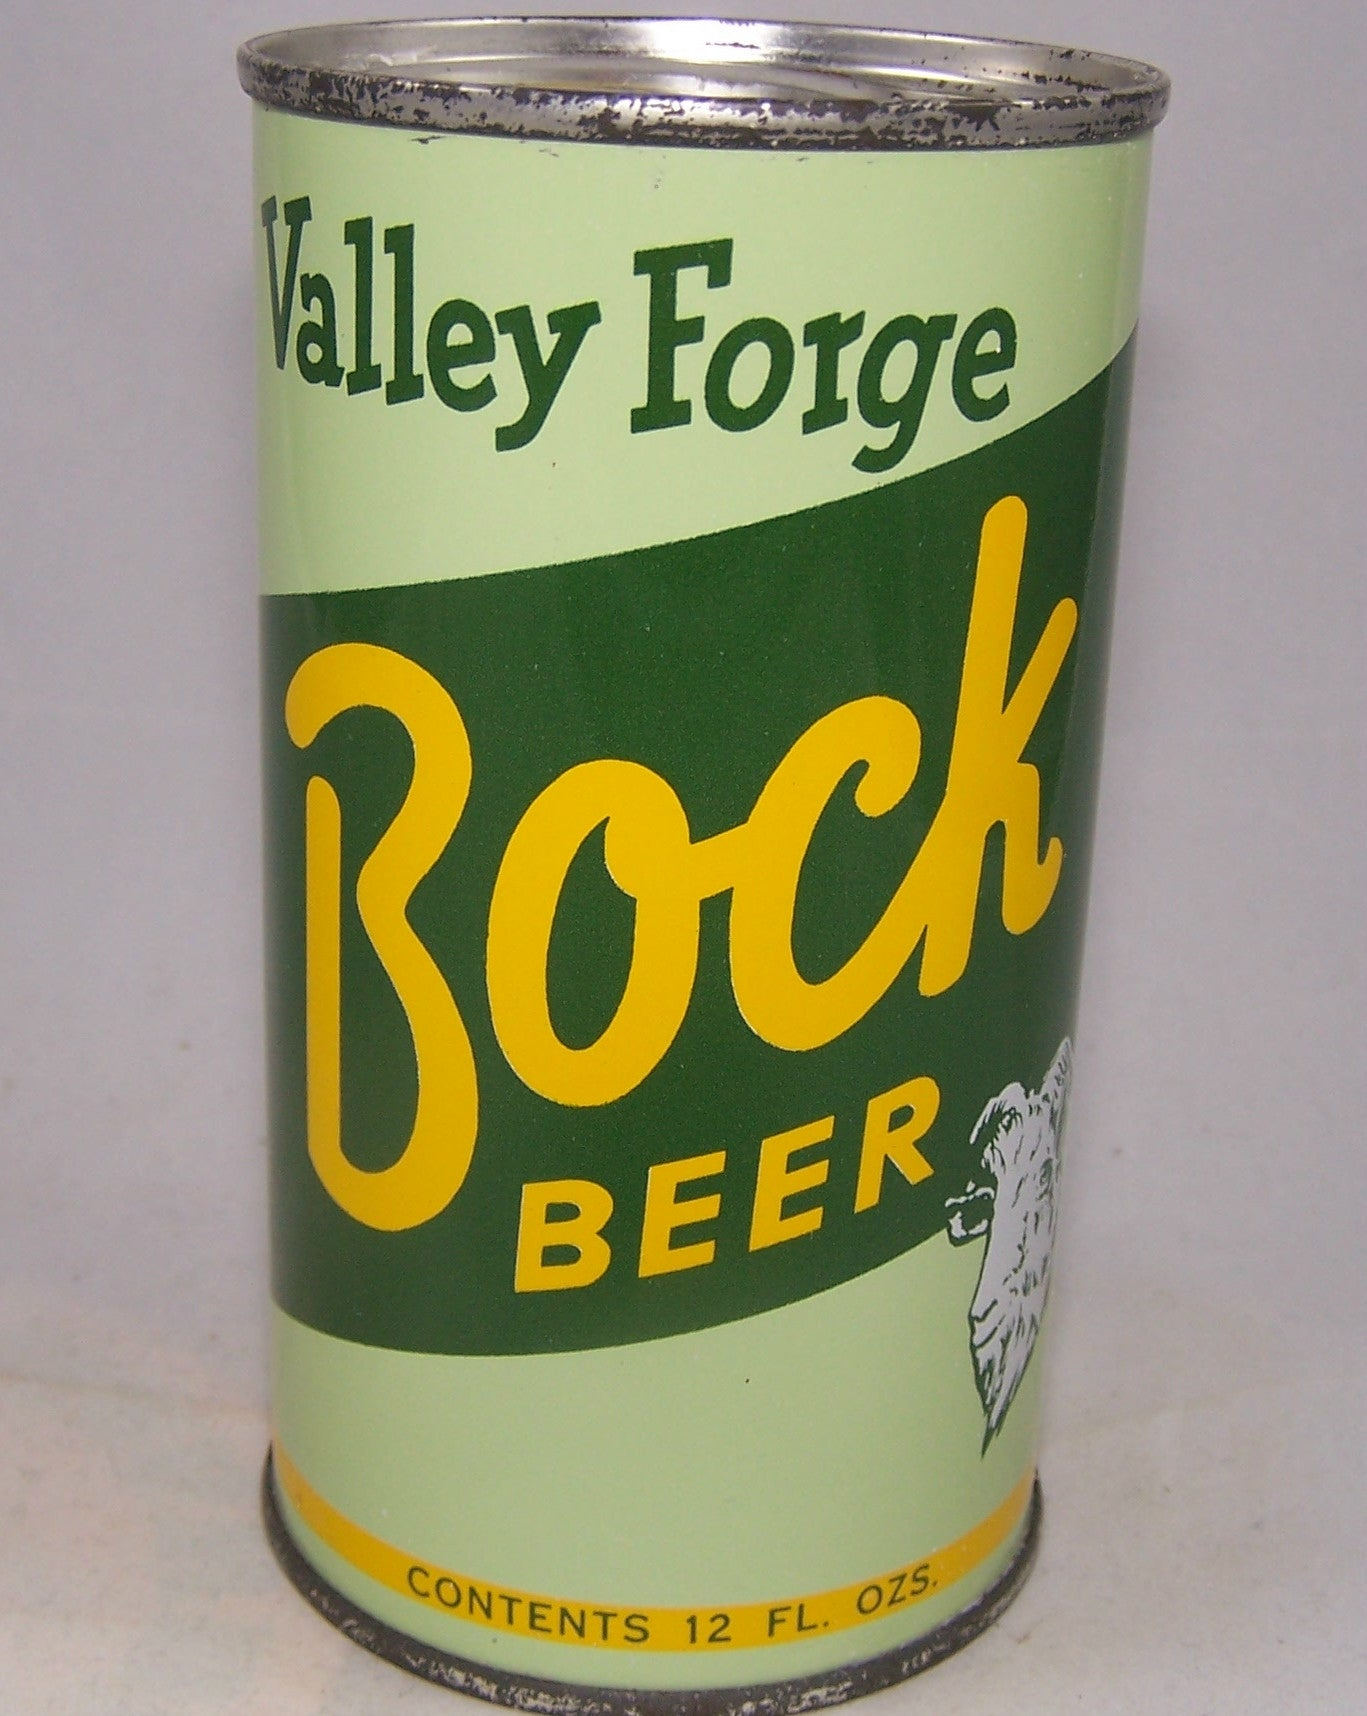 Valley Forge Bock Beer, USBC 143-11, Grade A1+ Traded